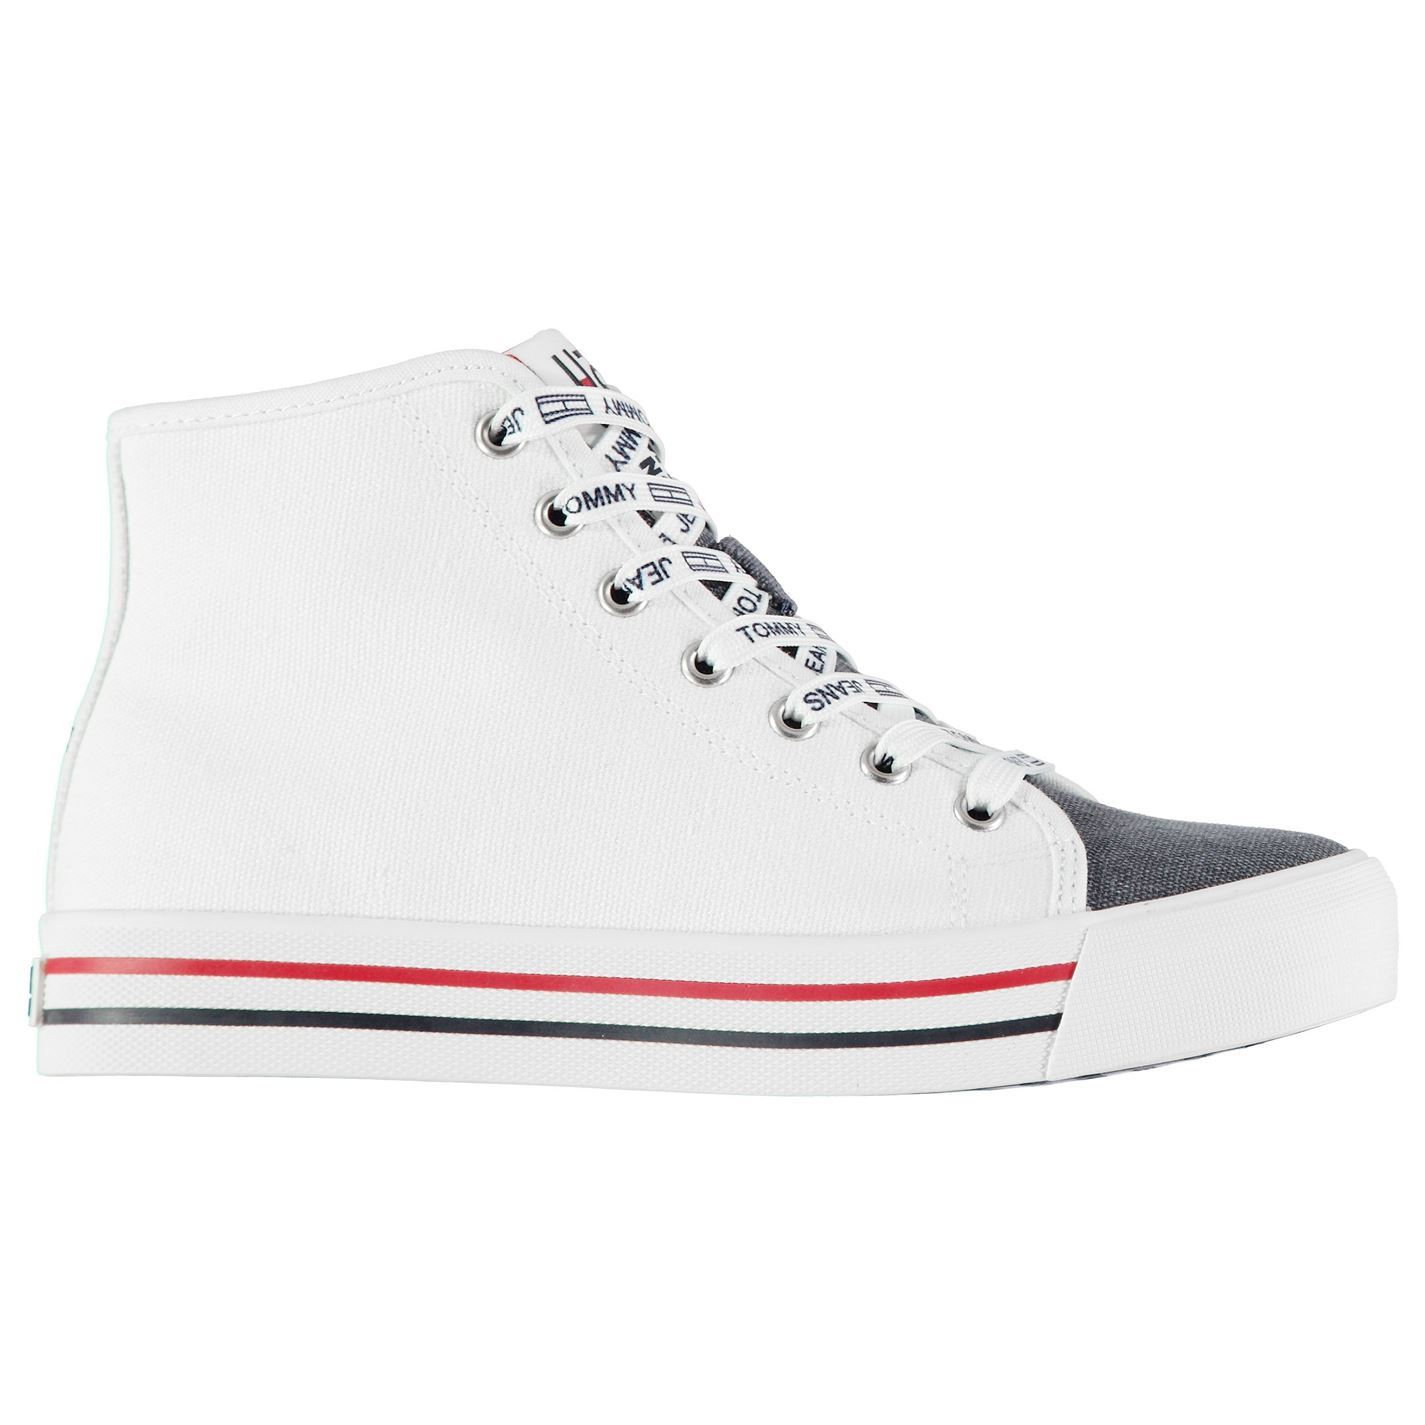 Damenschuhe Tommy Hilfiger Mid Cut Trainers Canvas Canvas Canvas High Lace Up TextuROT New 5b0d9a